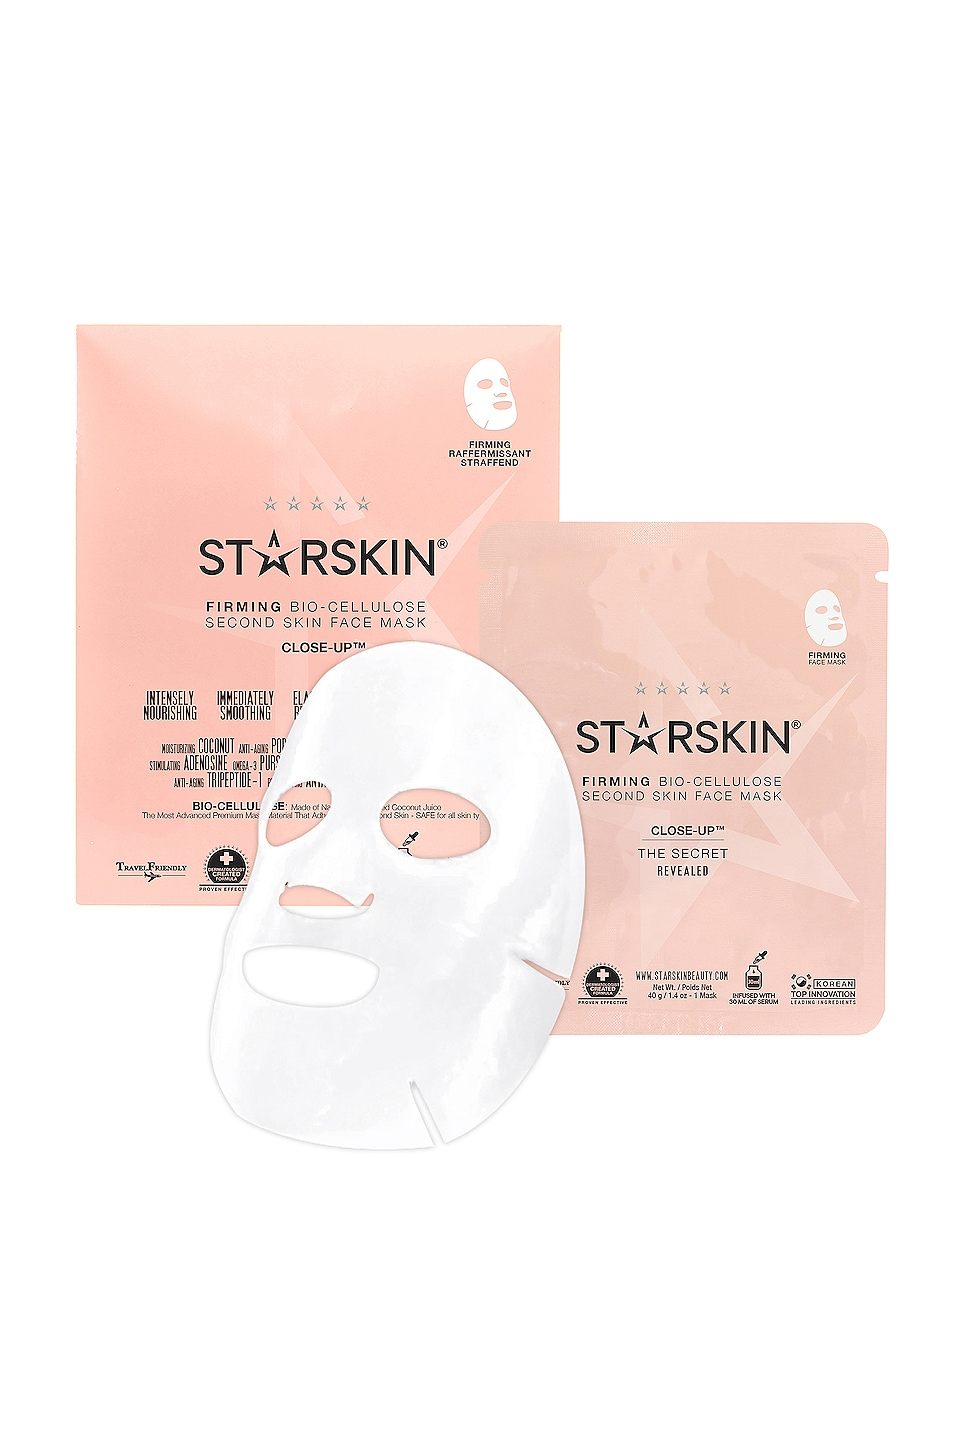 STARSKIN CLOSE-UP FIRMING BIO-CELLULOSE SECOND SKIN FACE MASK